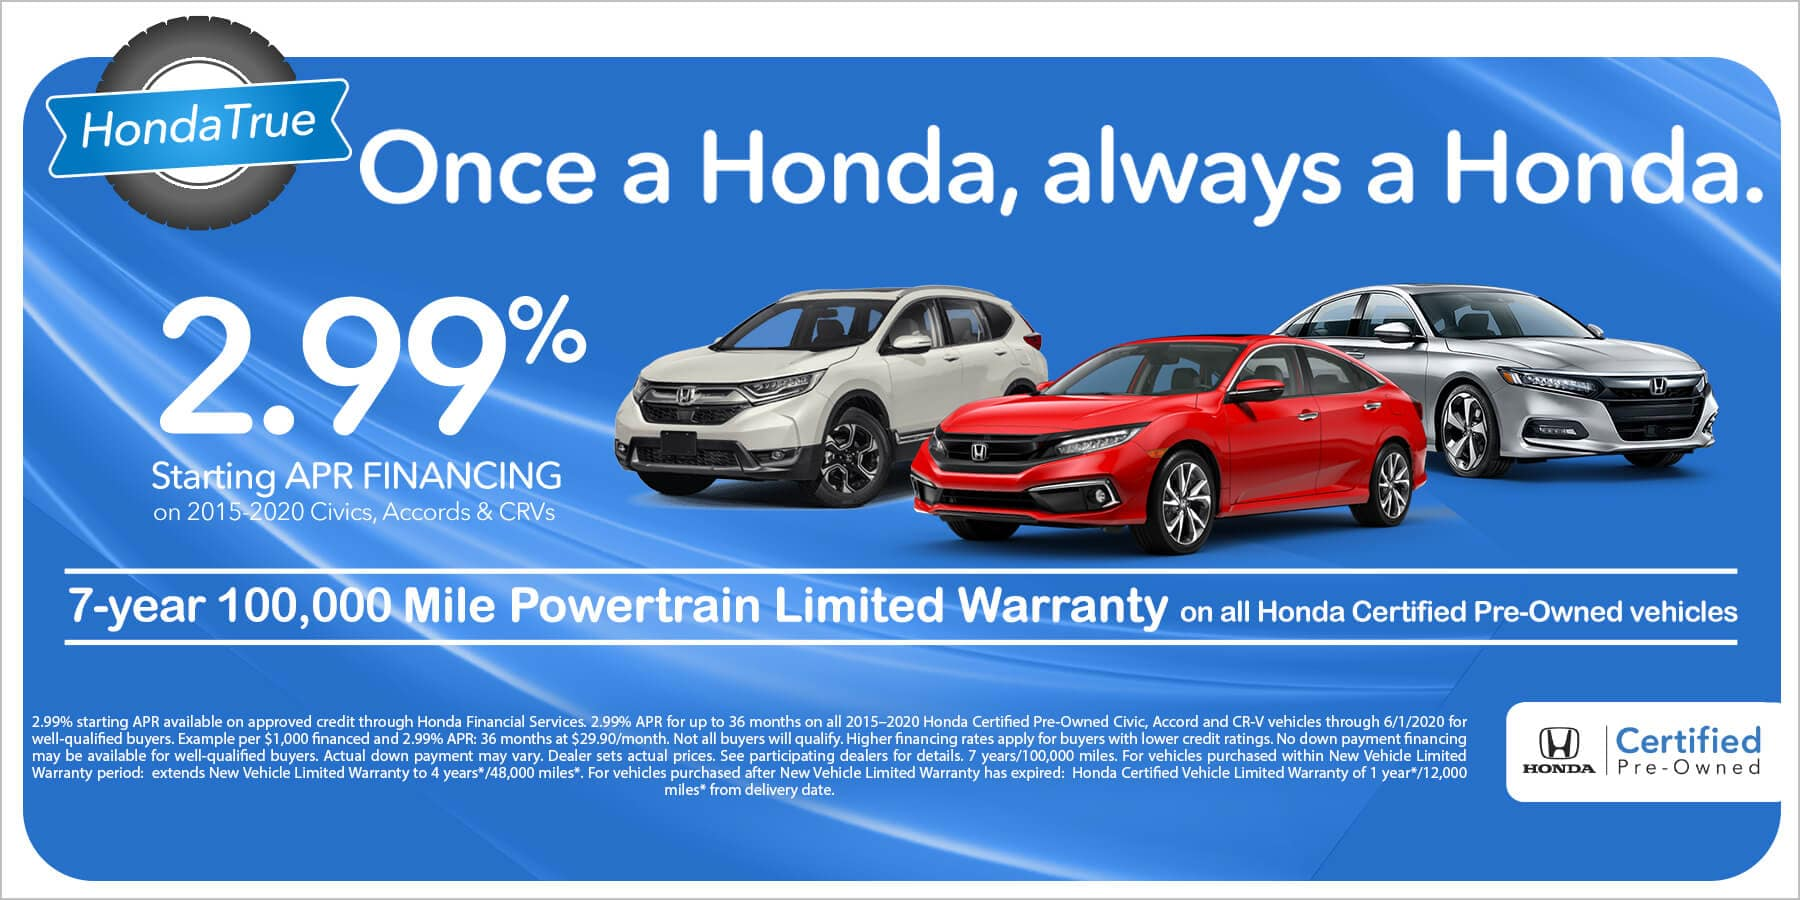 2.99% APR Financing on Select Certified Hondas